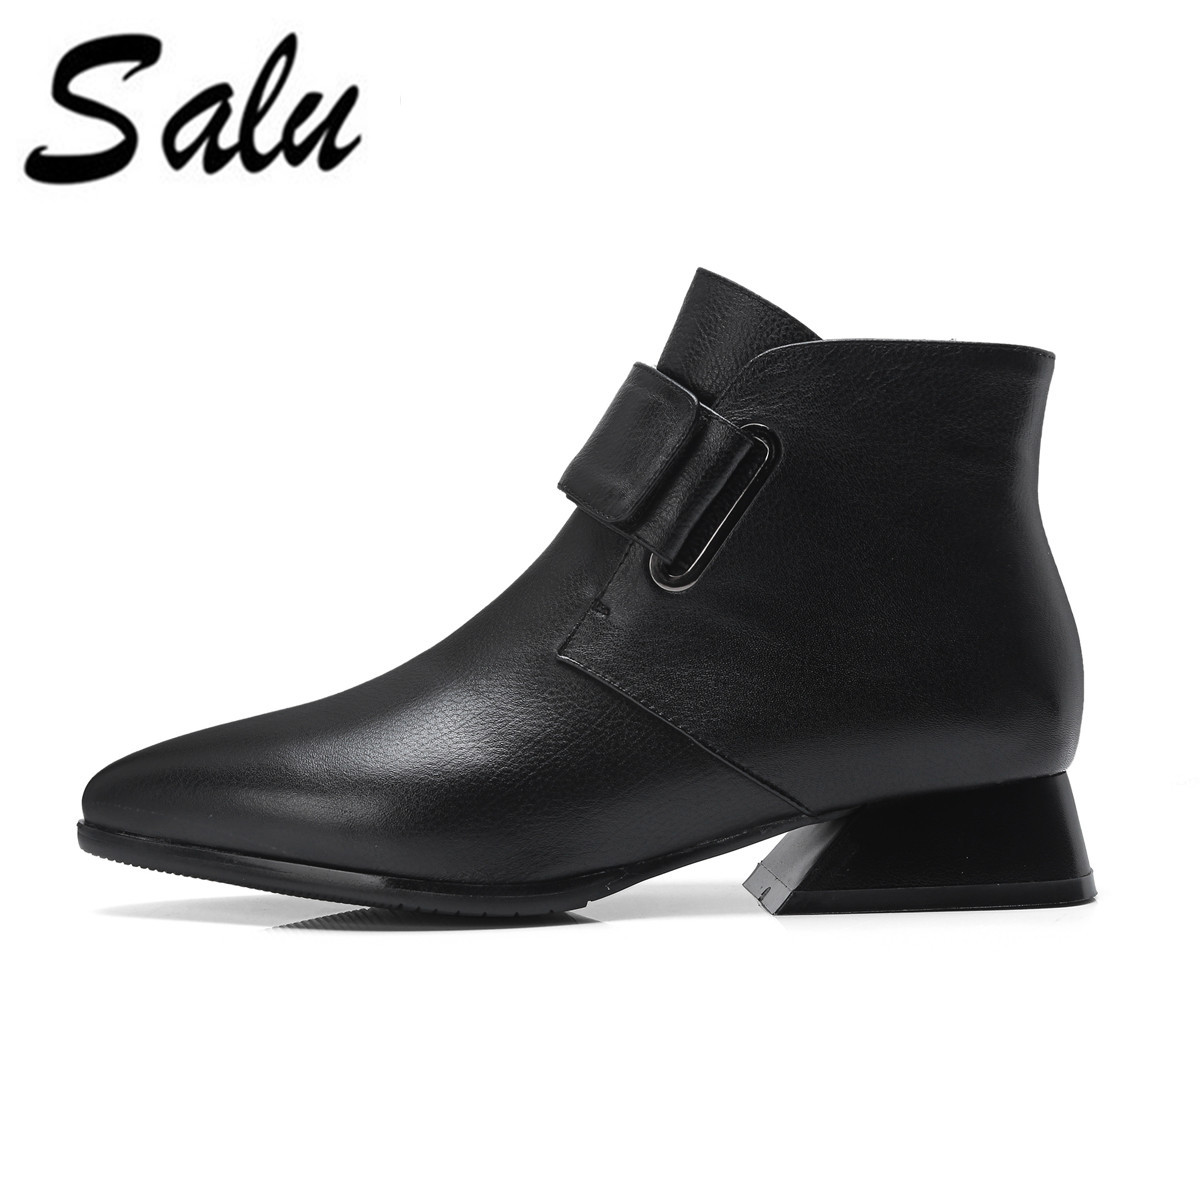 Salu 2018 new top quality Genuine leather ankle boots for women pointed toe autumn winter boots solid colors high heels boots enmayer high quality new pointed toe spike heels ankle boots winter platform boots for women leather motorcycle boots